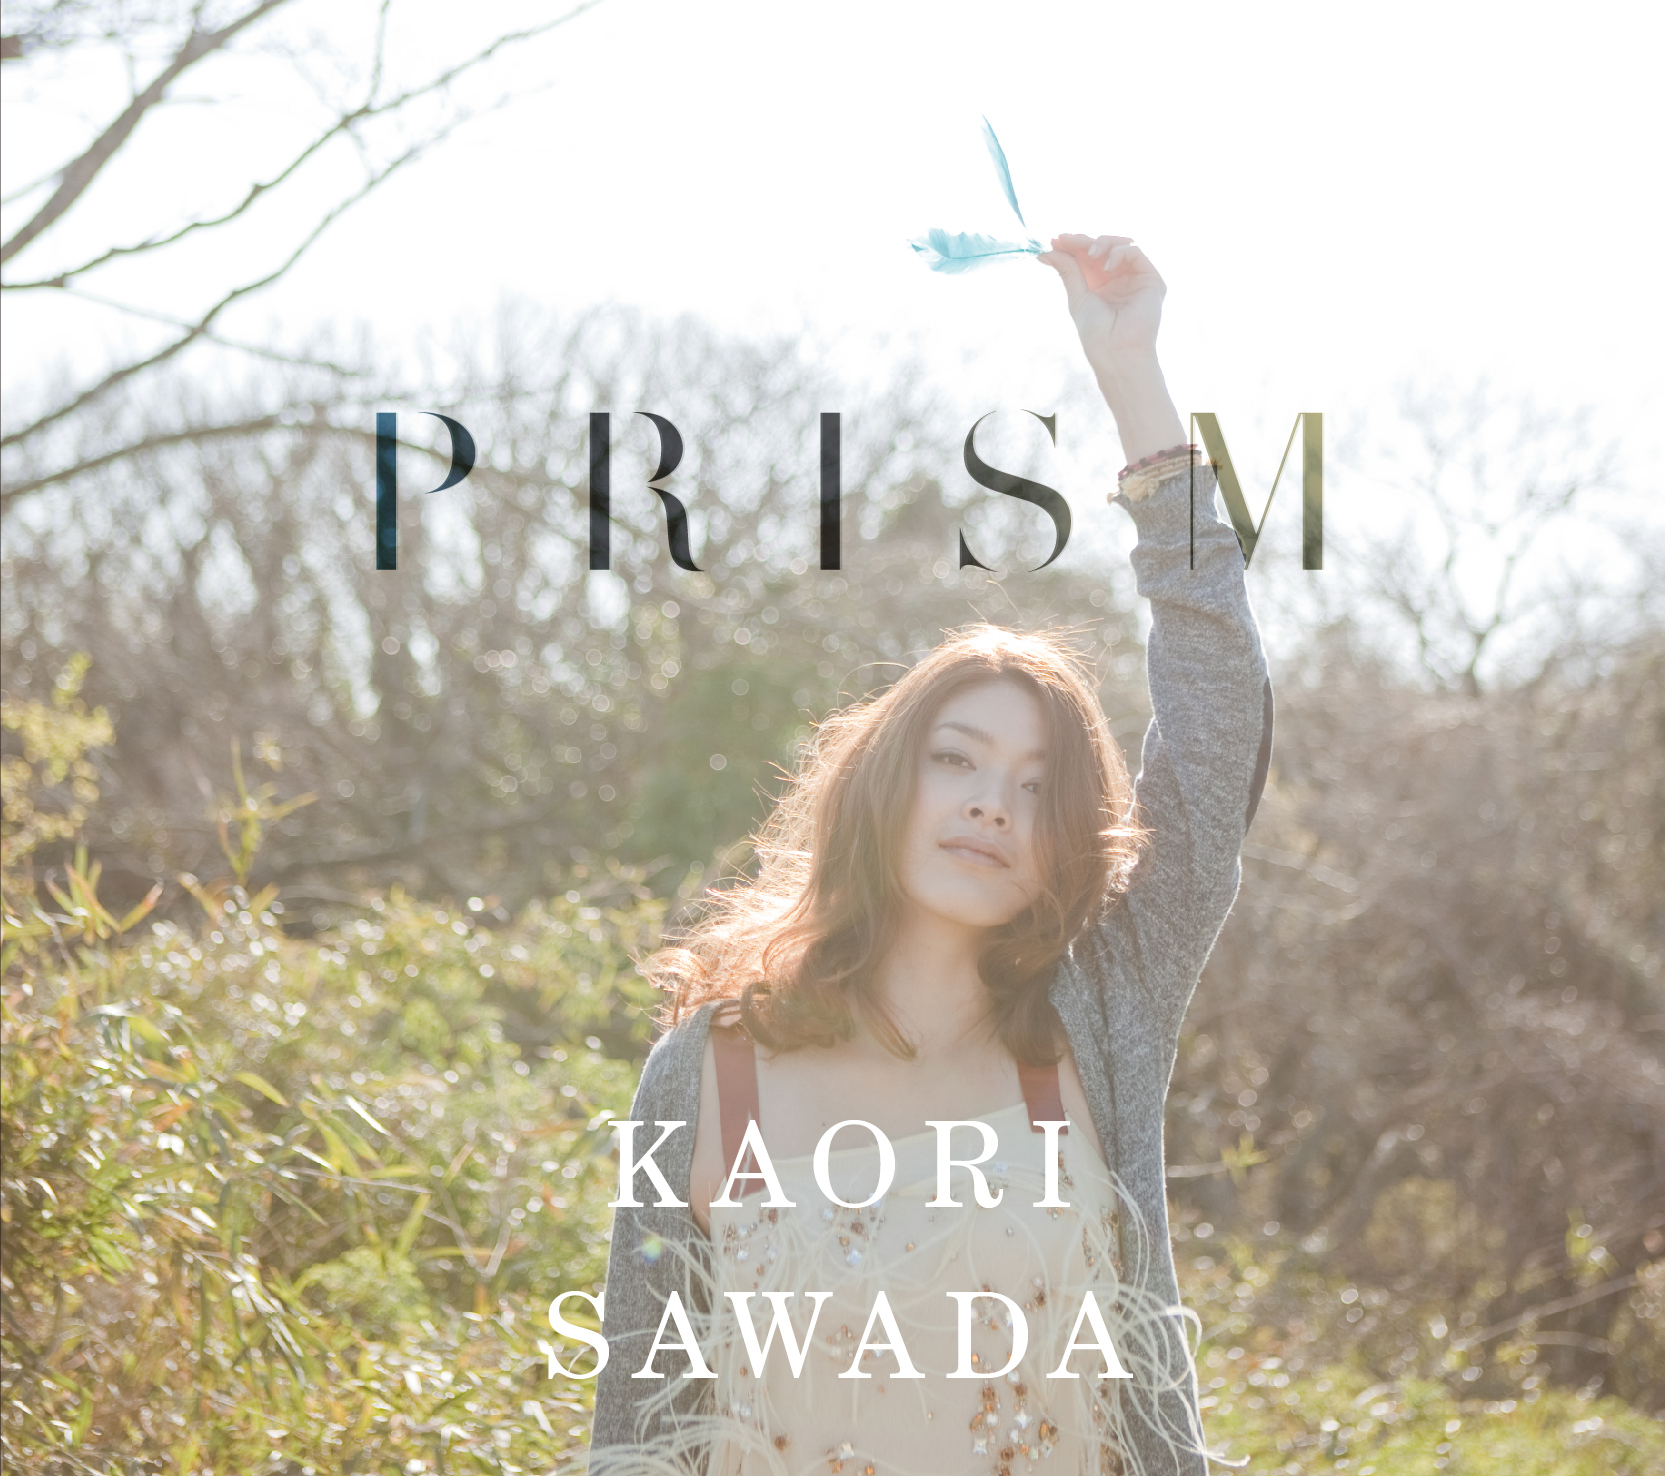 Independent debut album PRISM